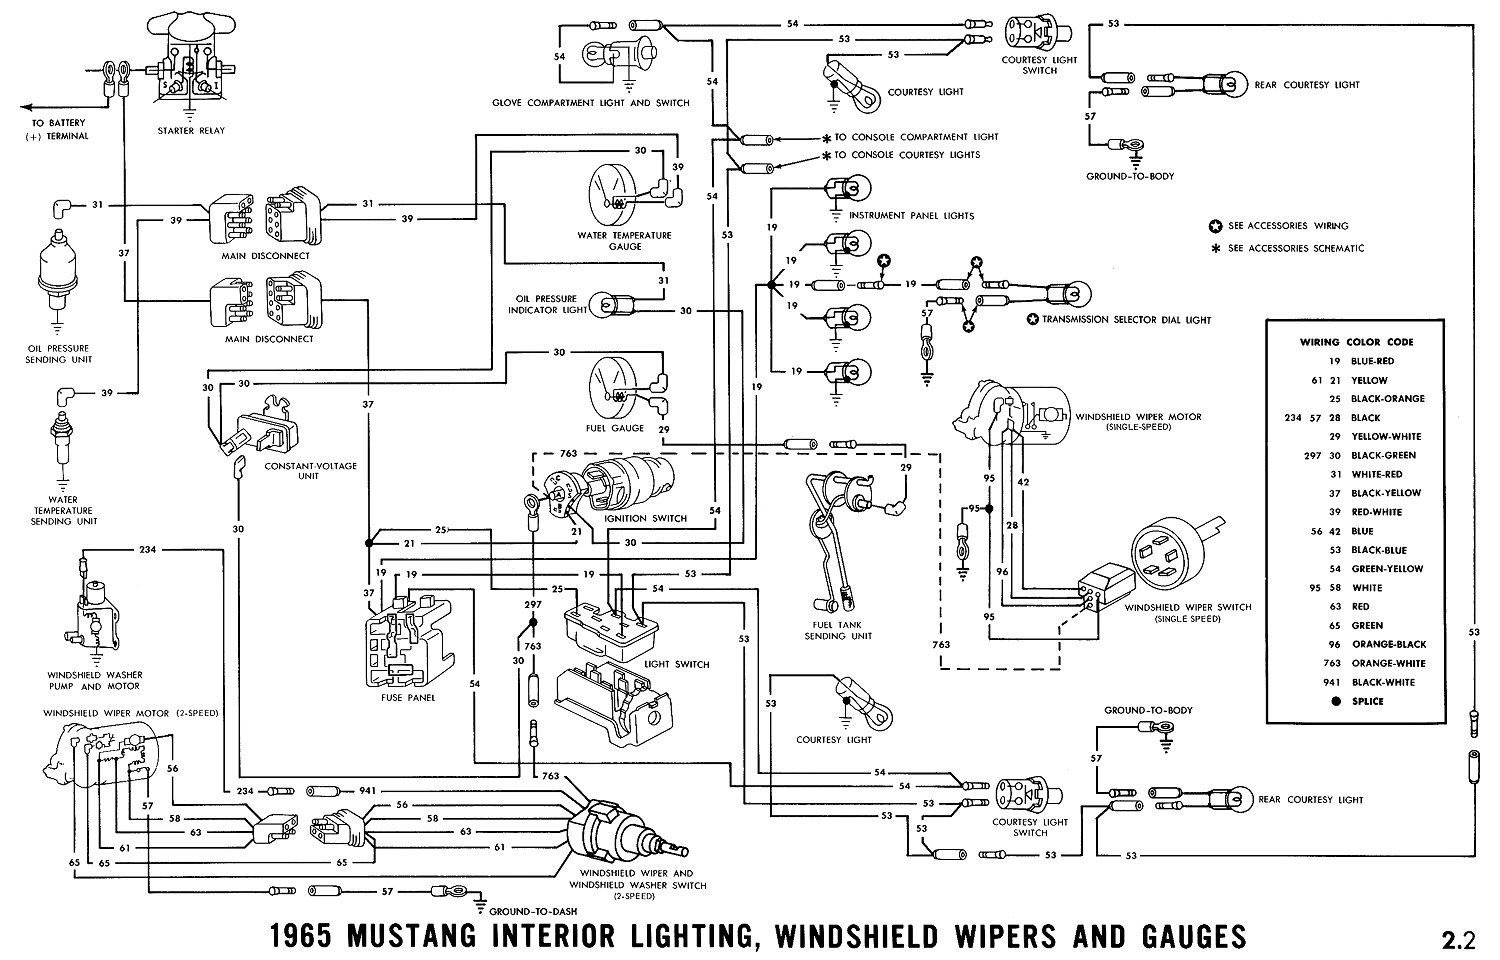 1965 mustang wiring diagrams average joe restoration rh averagejoerestoration com